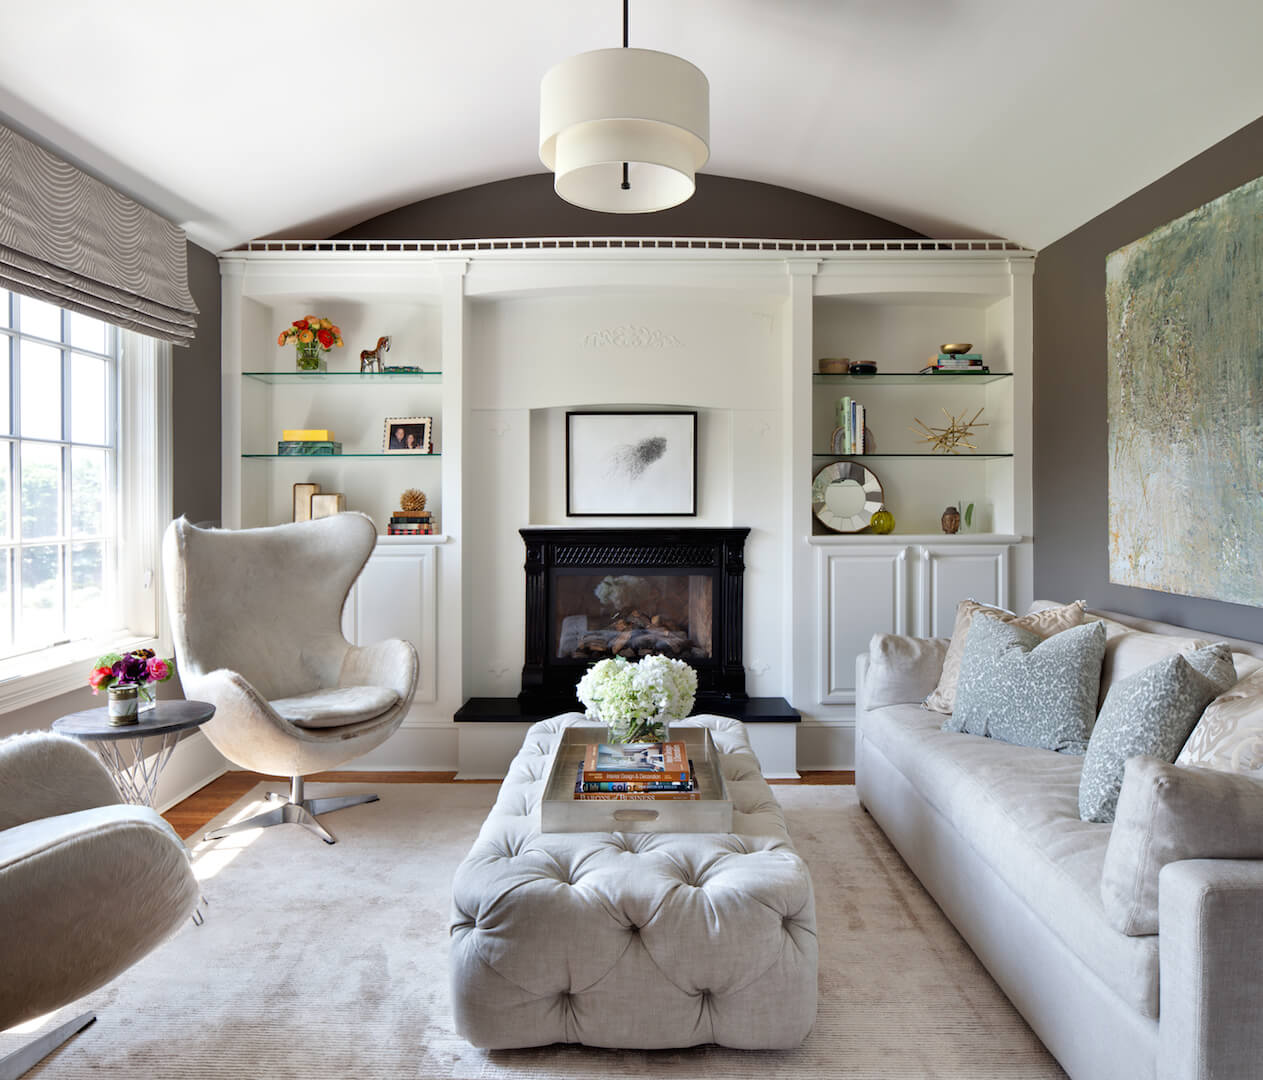 The sitting room adjacent to the primary suite has several cozy and furry chairs, a beige sofa, and a beautiful button-tufted upholstered ottoman. A metallic tray on top allows the ottoman to double as a coffee table. On the far wall is an enclosed fireplace and built-in shelving.